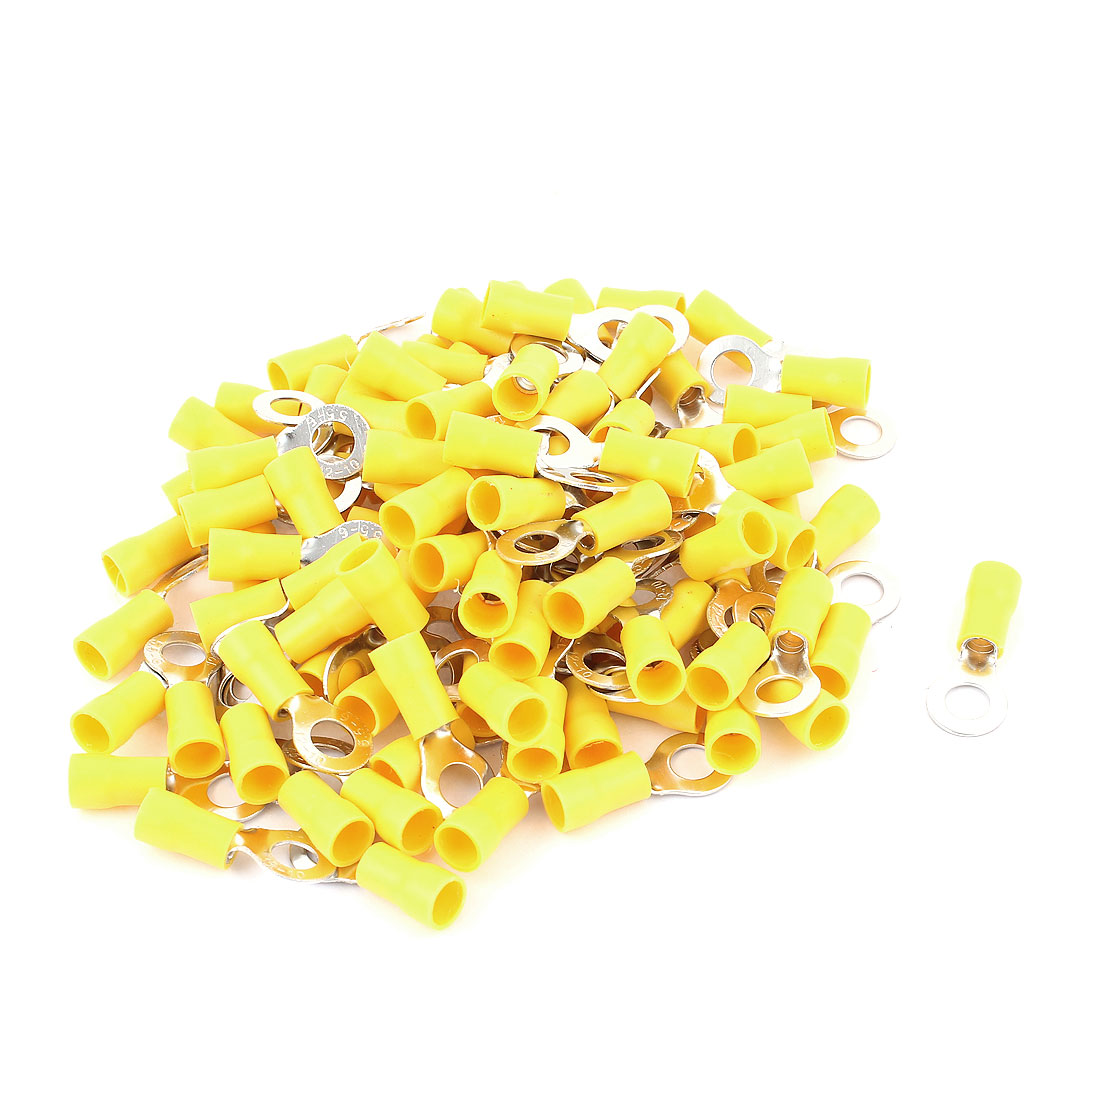 100pcs Cable Connector Pre-Insulated Ring Terminal RV5.5-6 for AWG 12-10 Wire